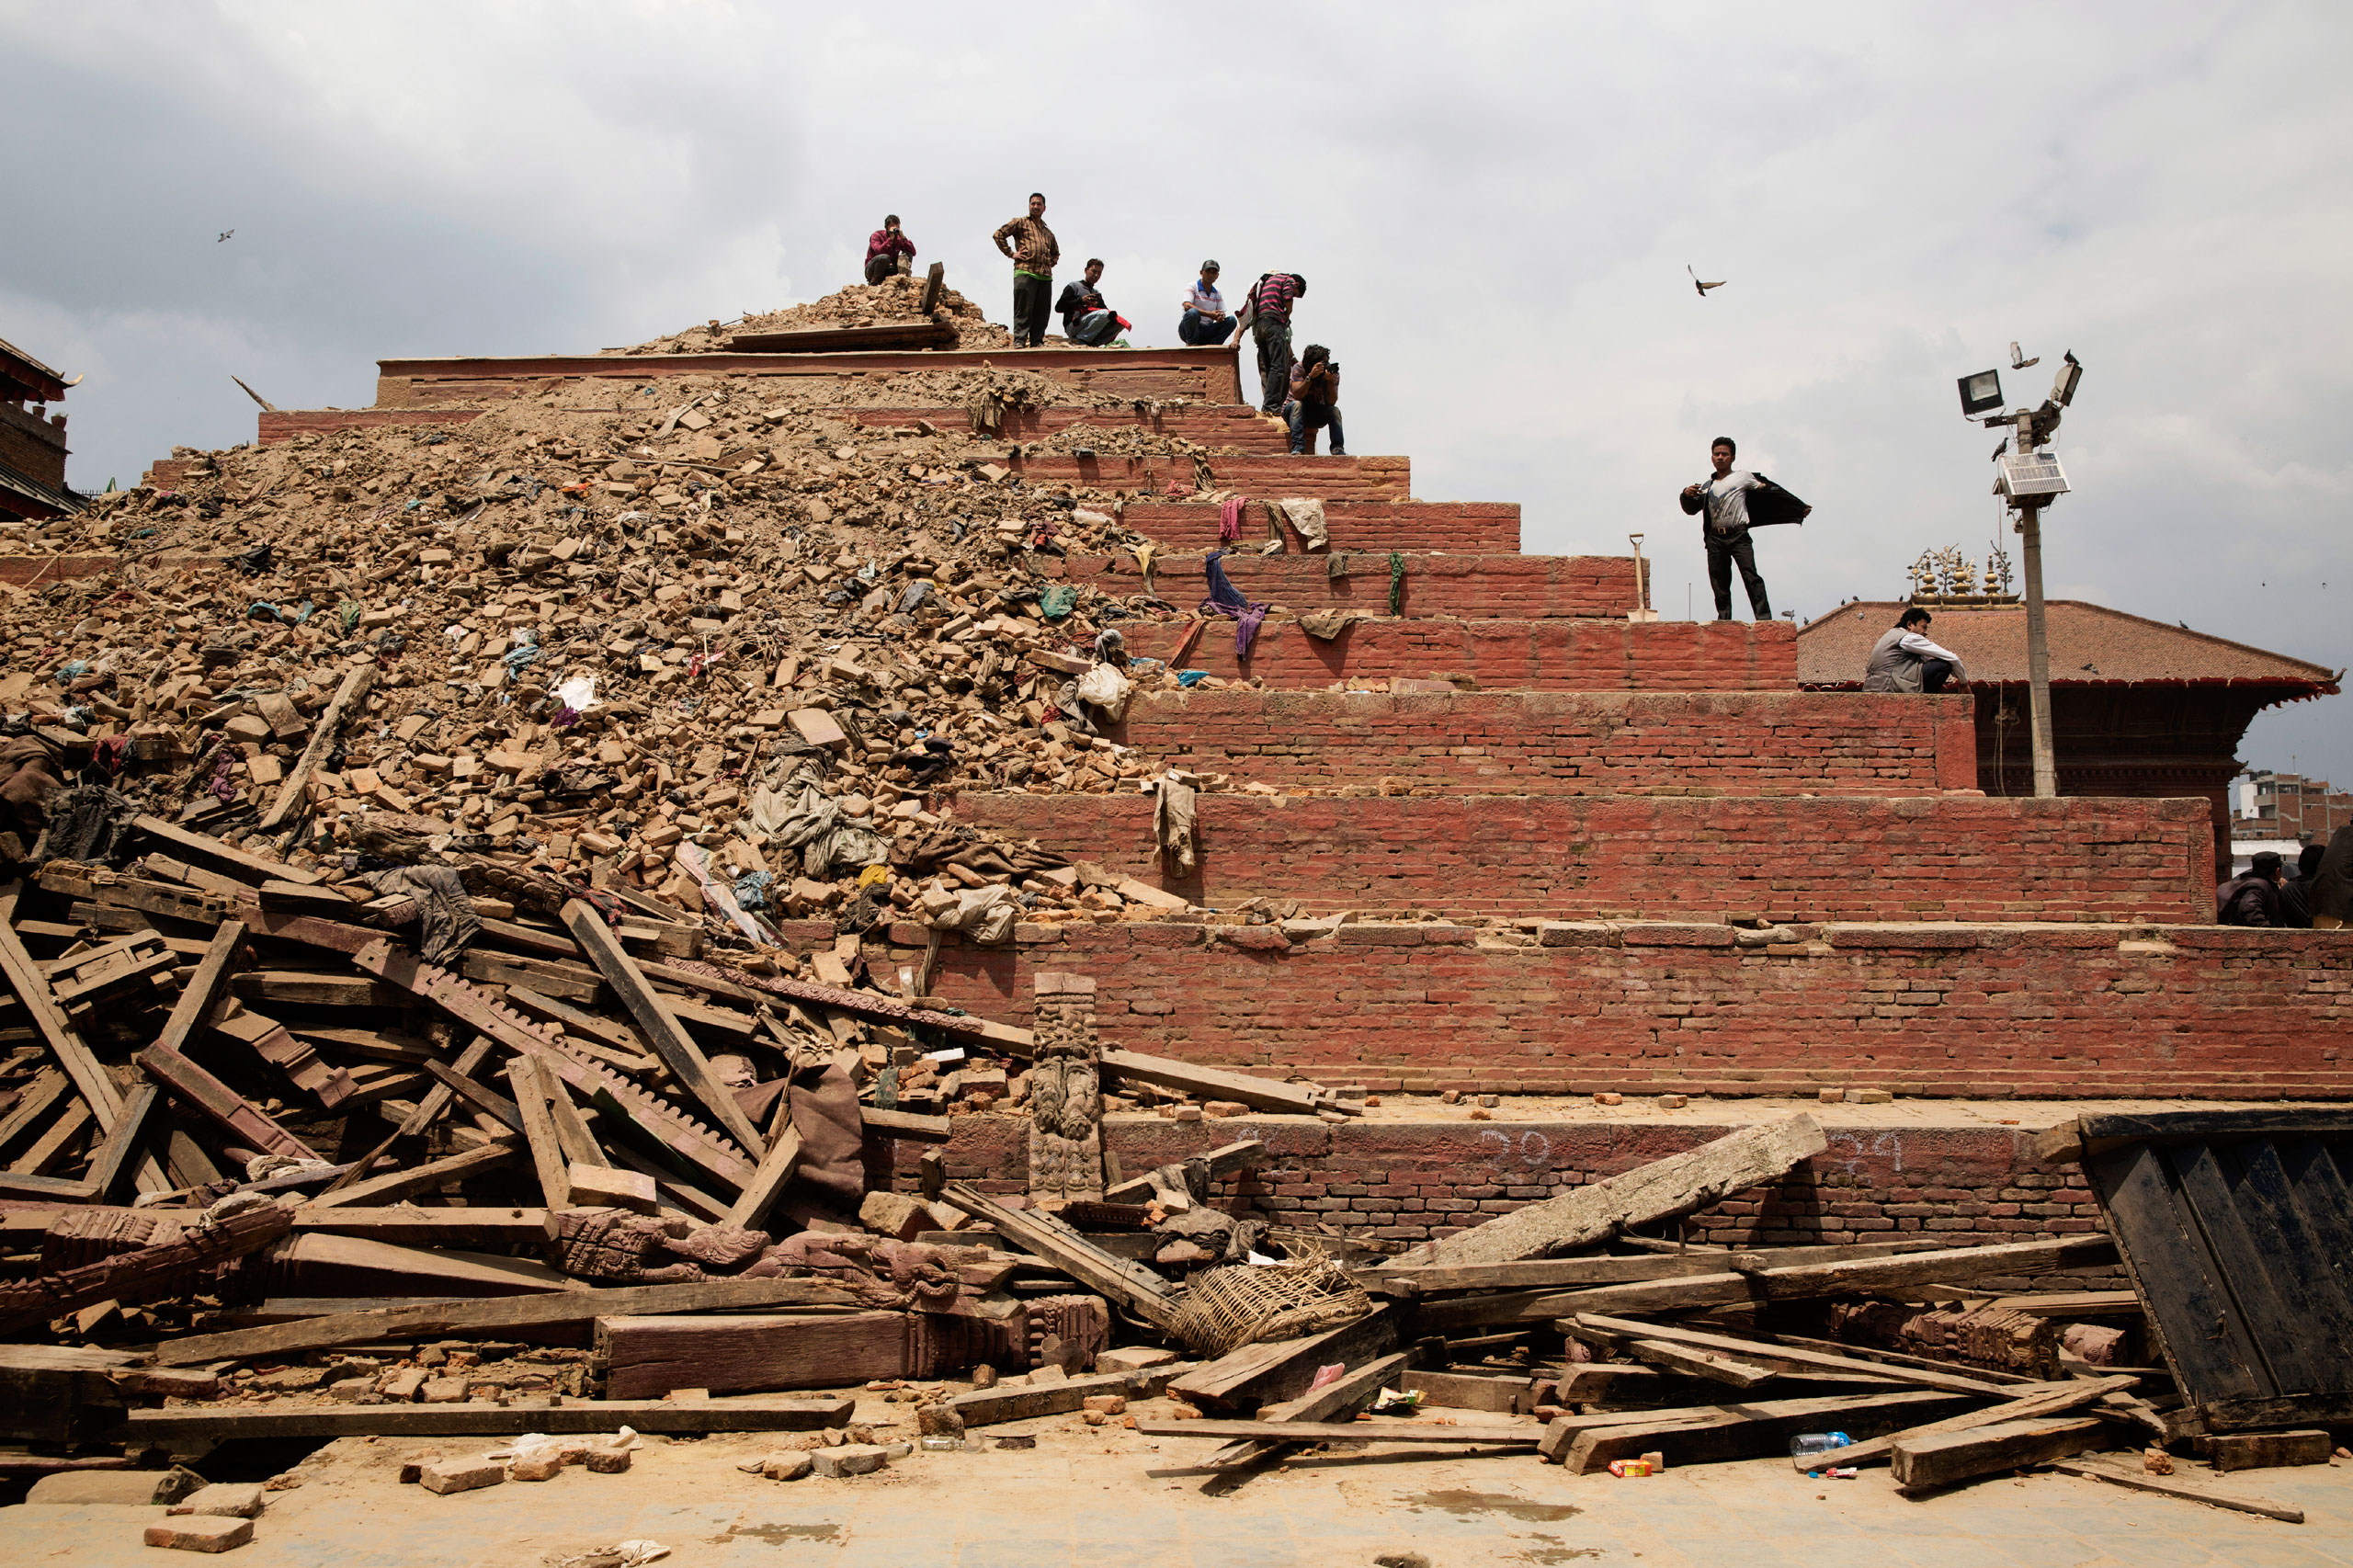 People stand on top of a damaged building in Durbar Square in Kathmandu, April 26, 2015. The historic Durbar Square, a UNESCO world heritage site, was severely damaged in the earthquake.